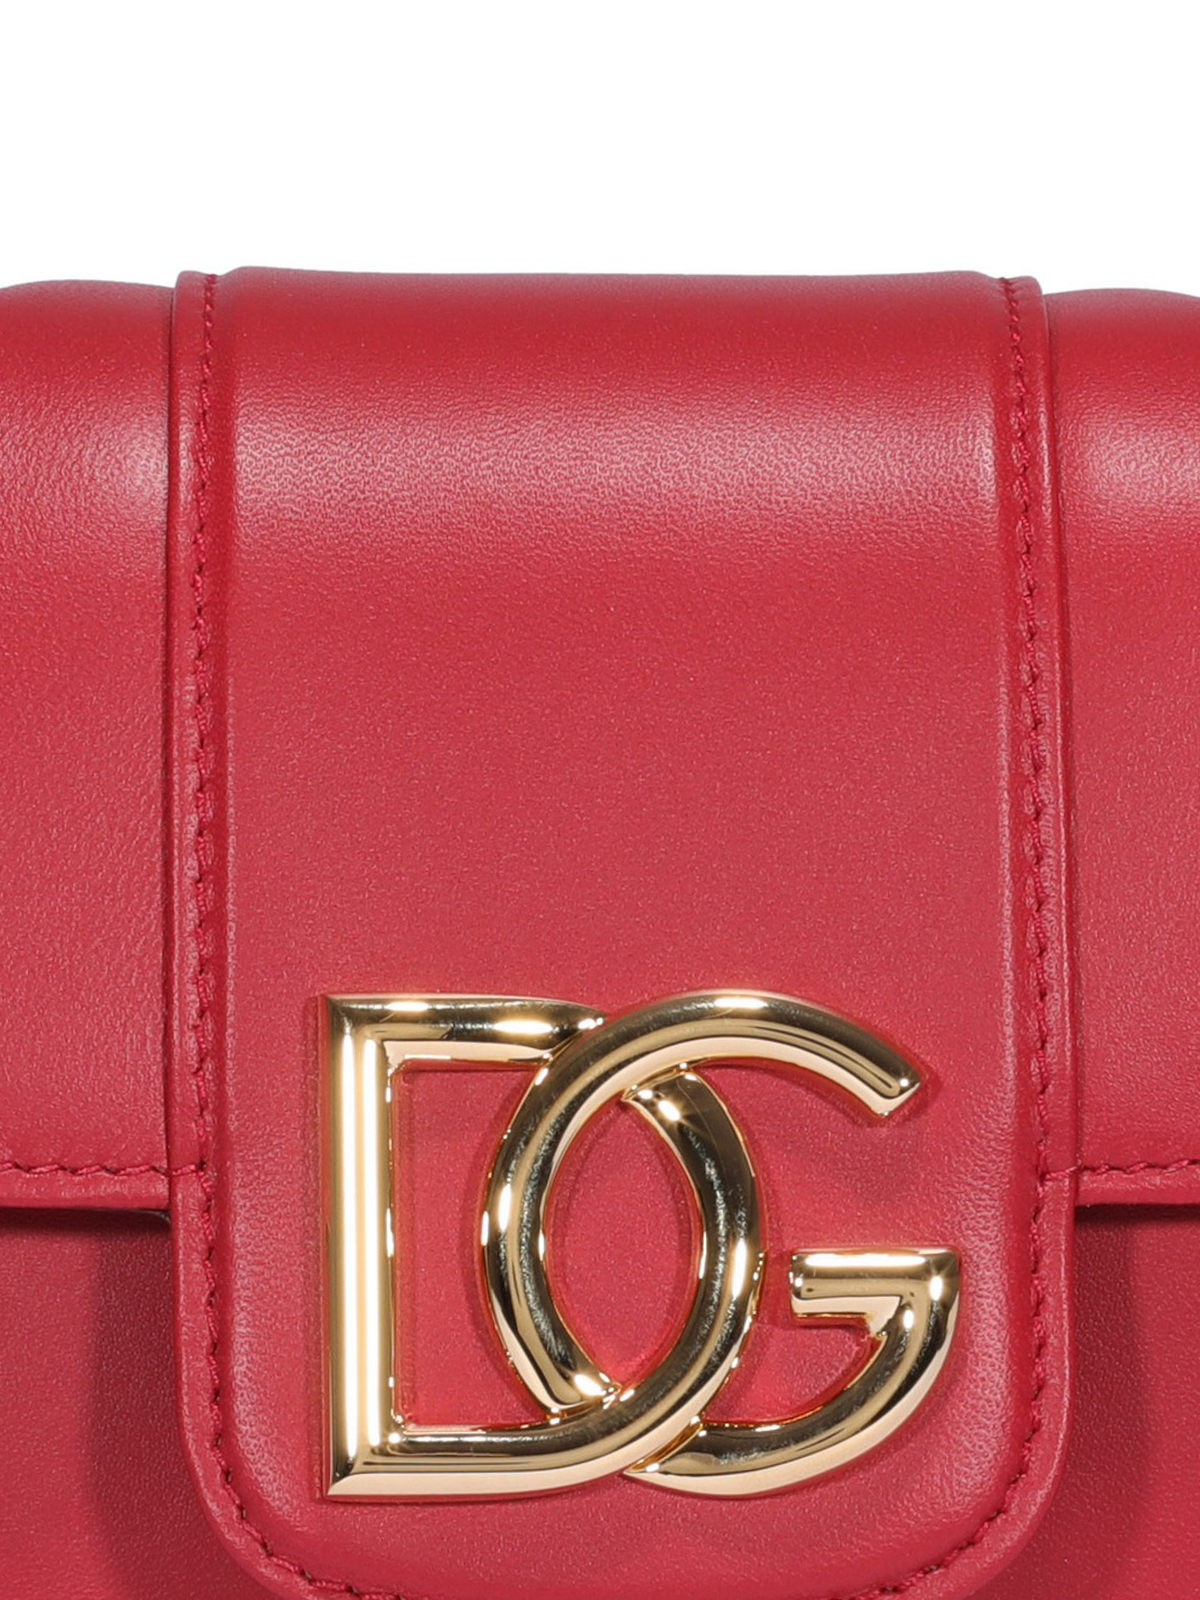 dolce and gabanna small red cross body chain bag